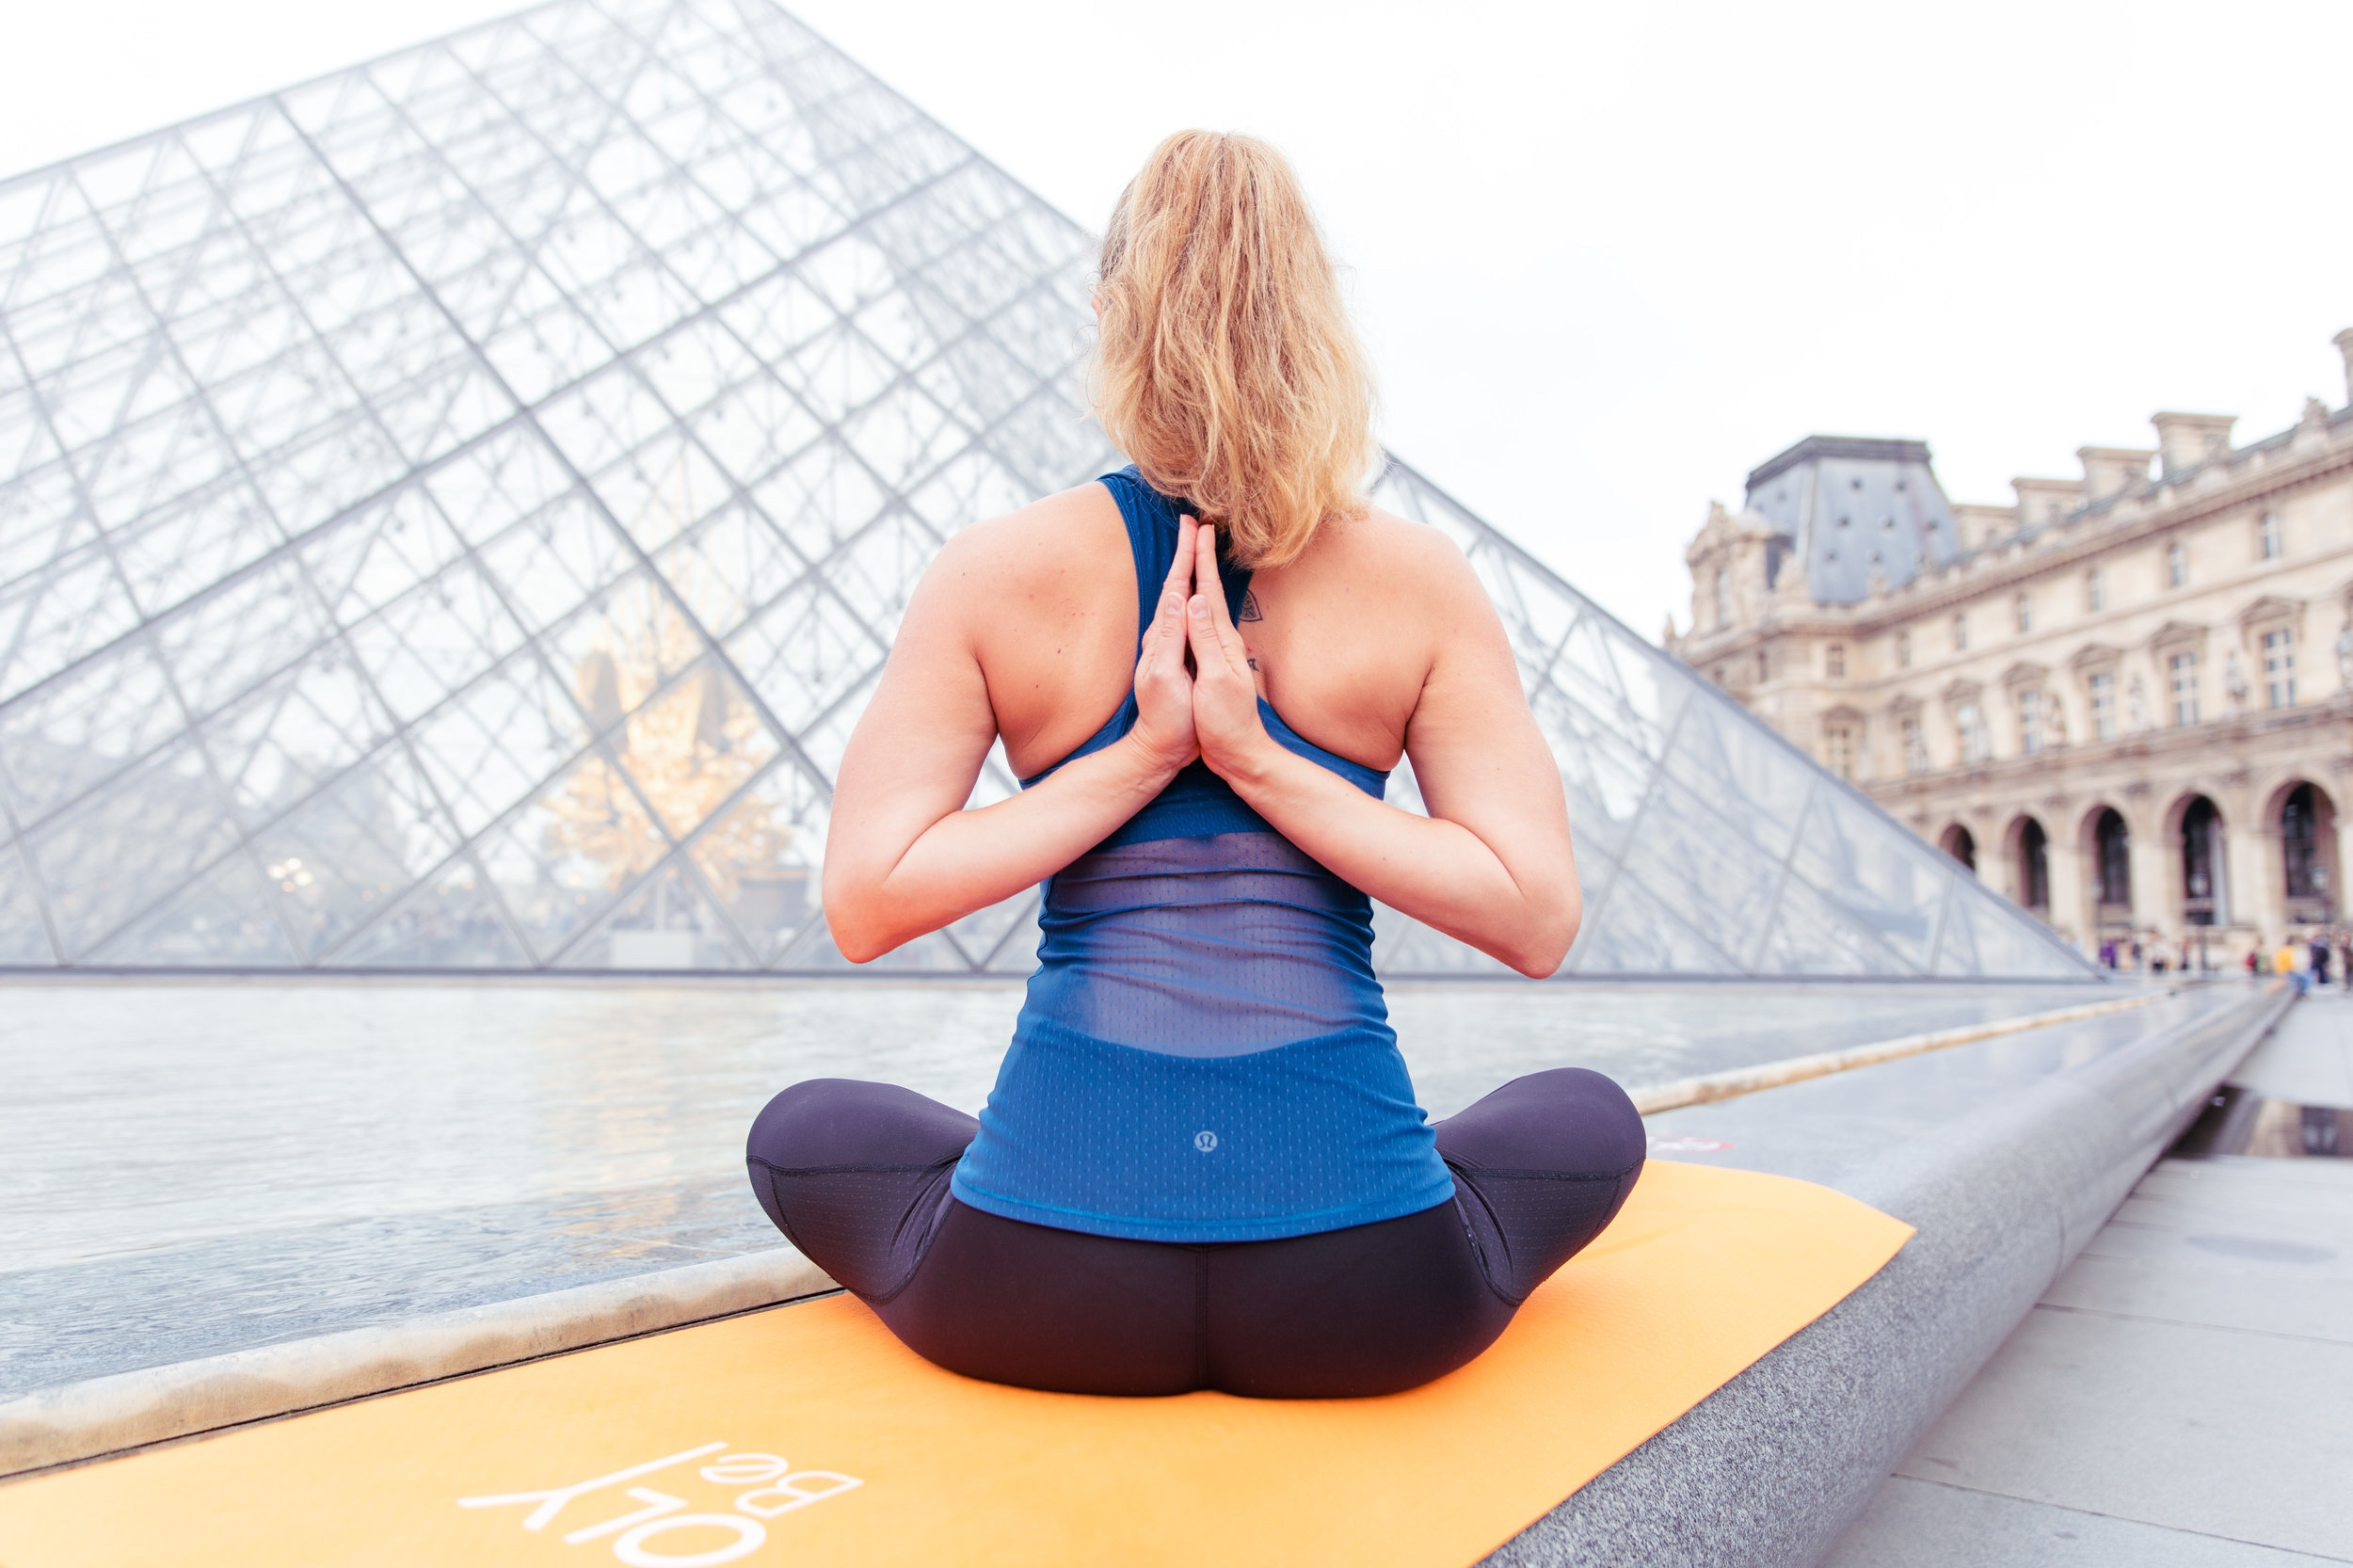 102018_OLYBE_YogaInTheCity%C2%A9DelphineJoly03.jpg